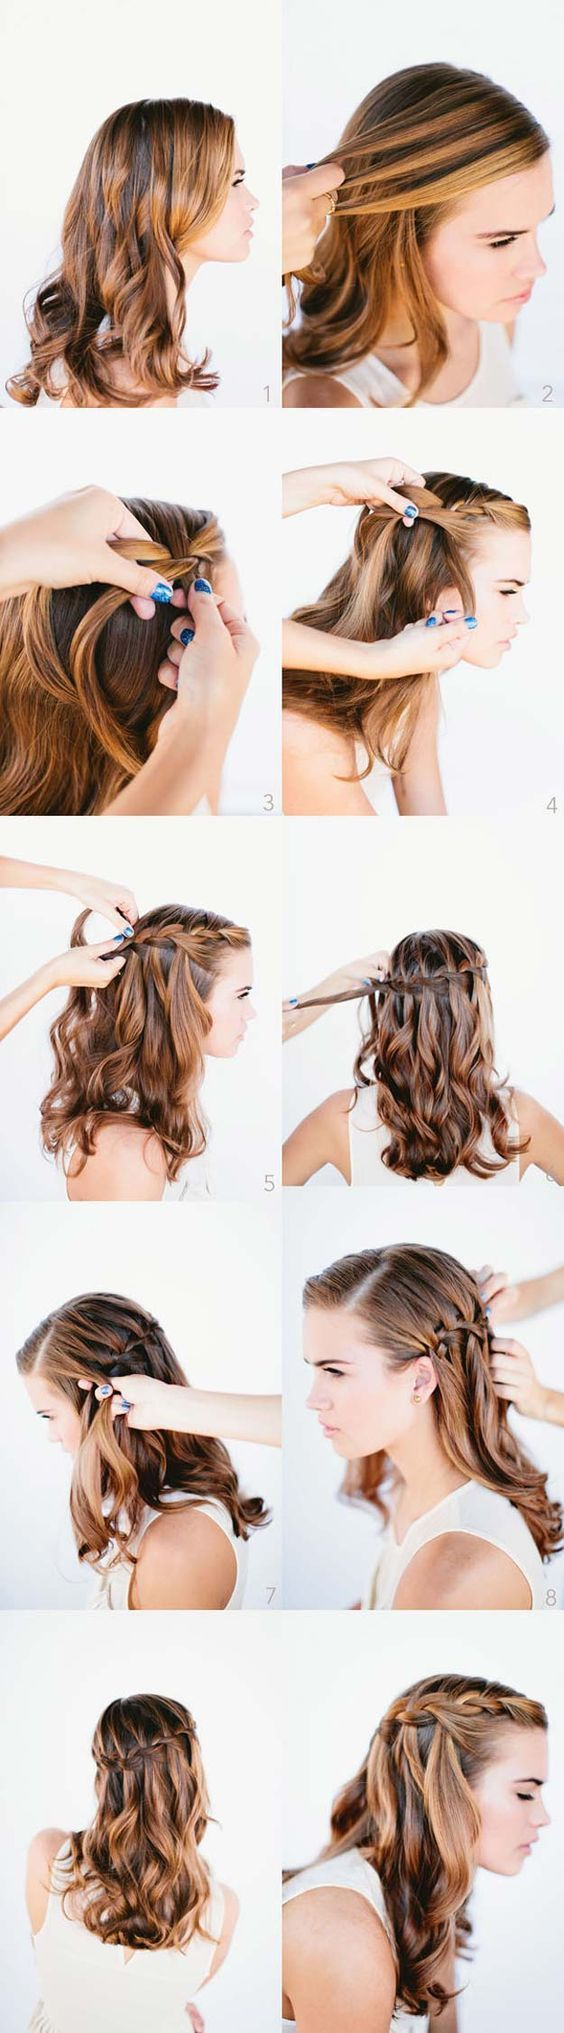 122 best Wedding Hairstyles images on Pinterest   Hairstyle ideas ...